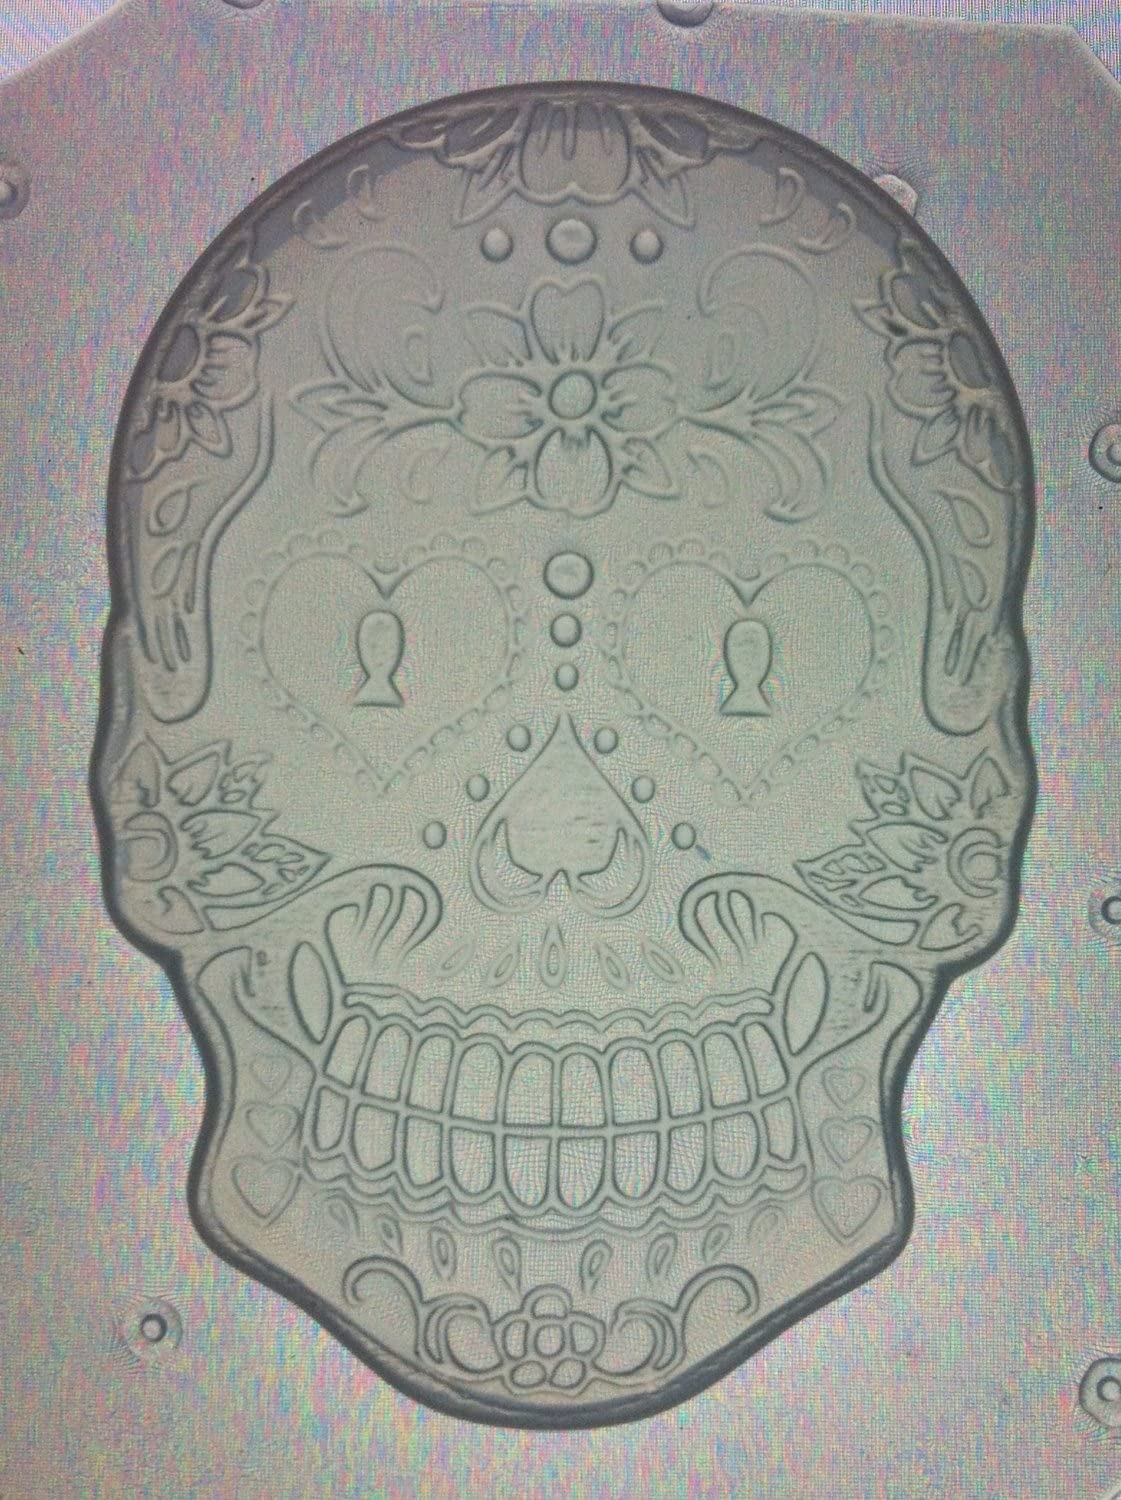 Flexible Resin Mold Day of The Dead Sugar Skull (Large: 2.75